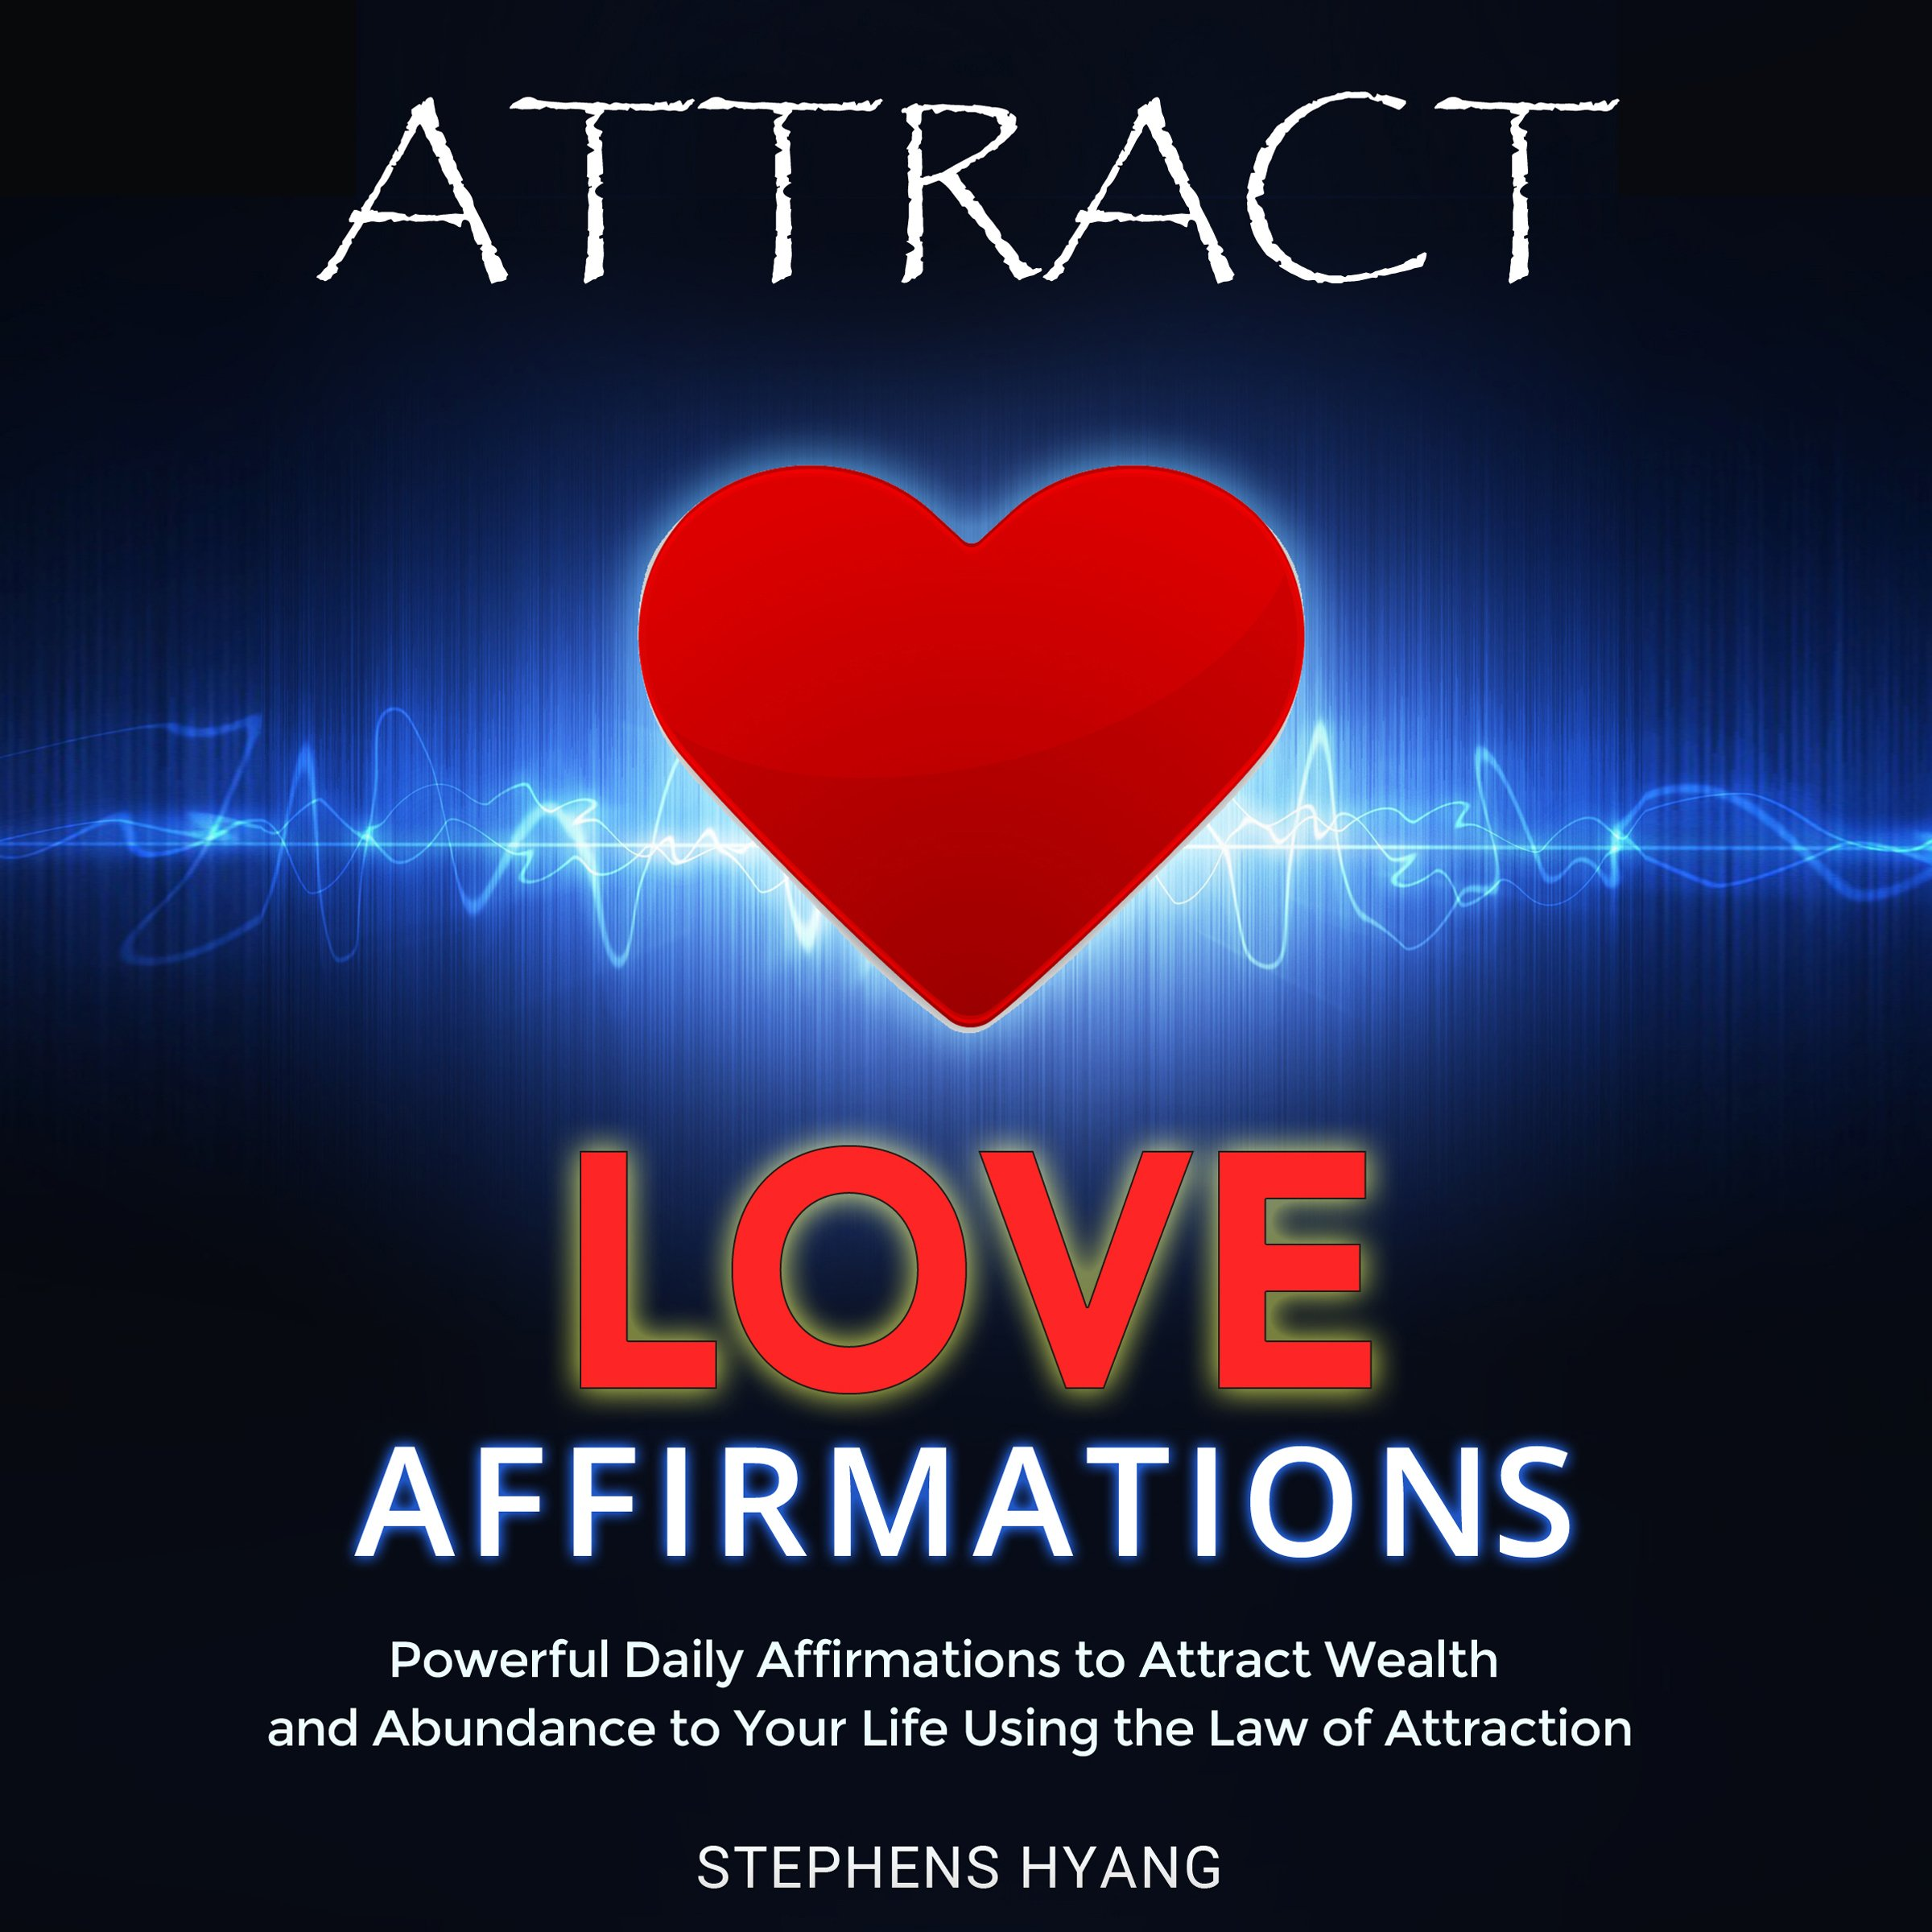 Image OfAttract Love Affirmations: Daily Subliminal Messages To Attract Love And Affection To Your Life Using The Power Of The Law...